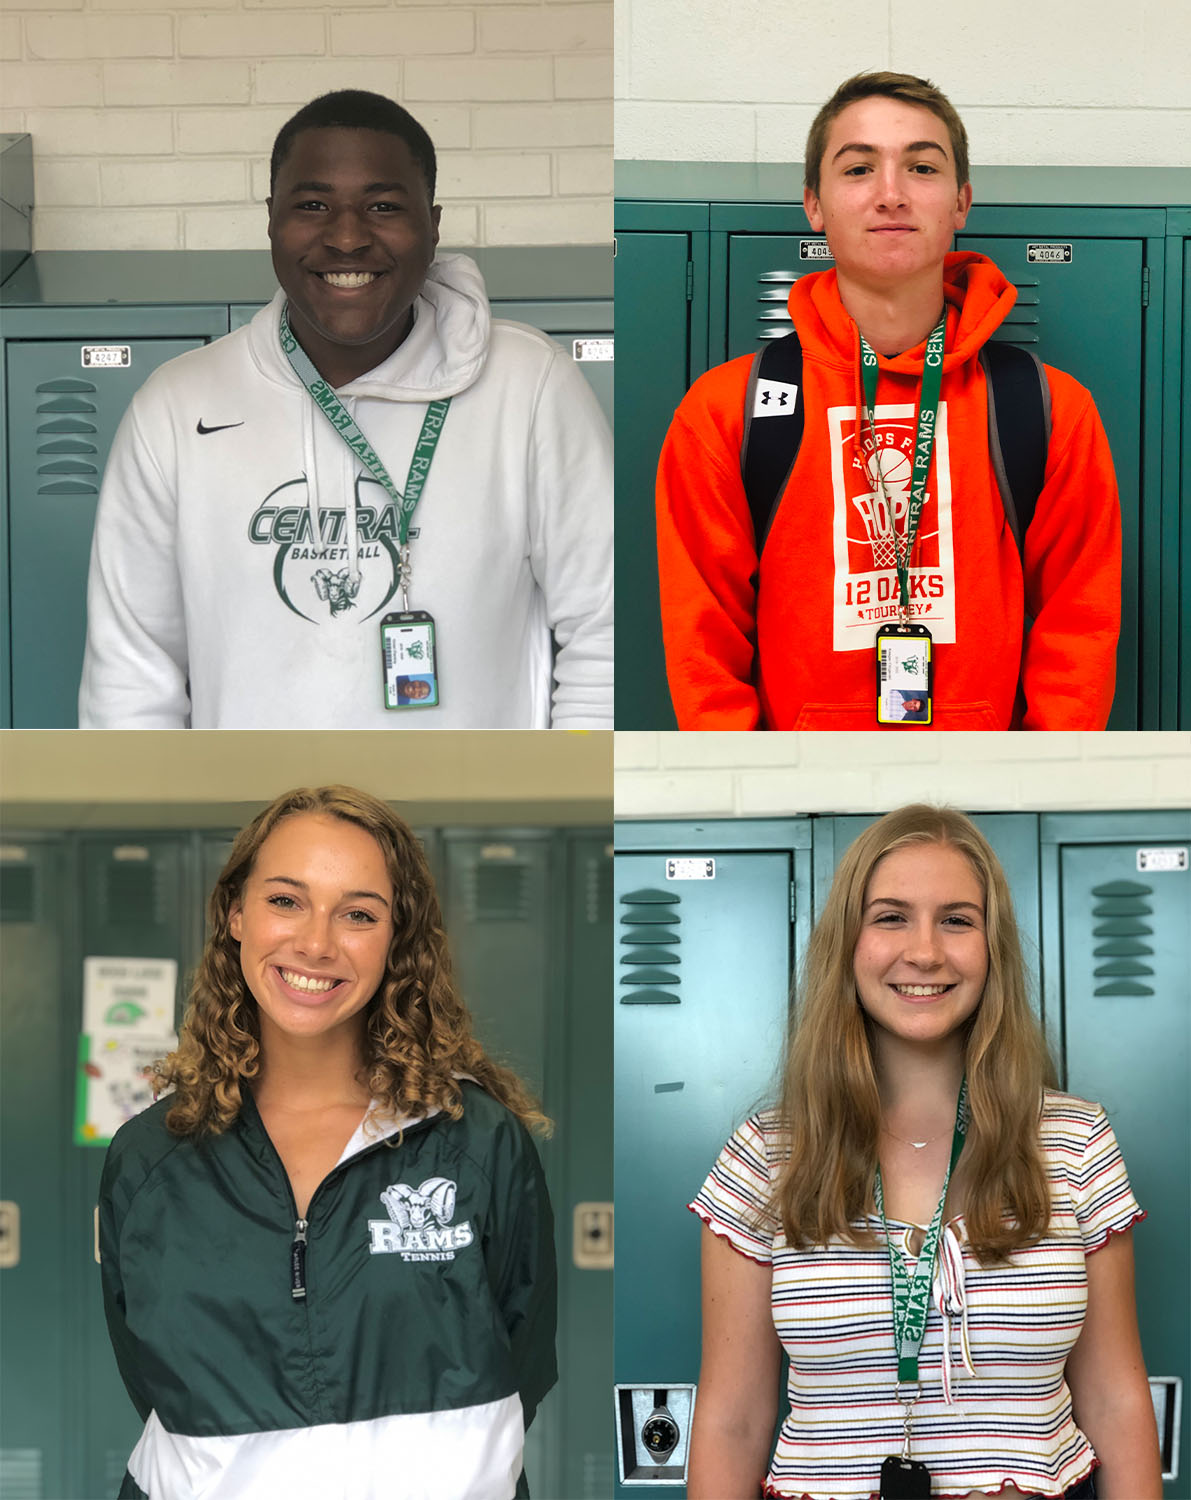 Student council brings new perspective